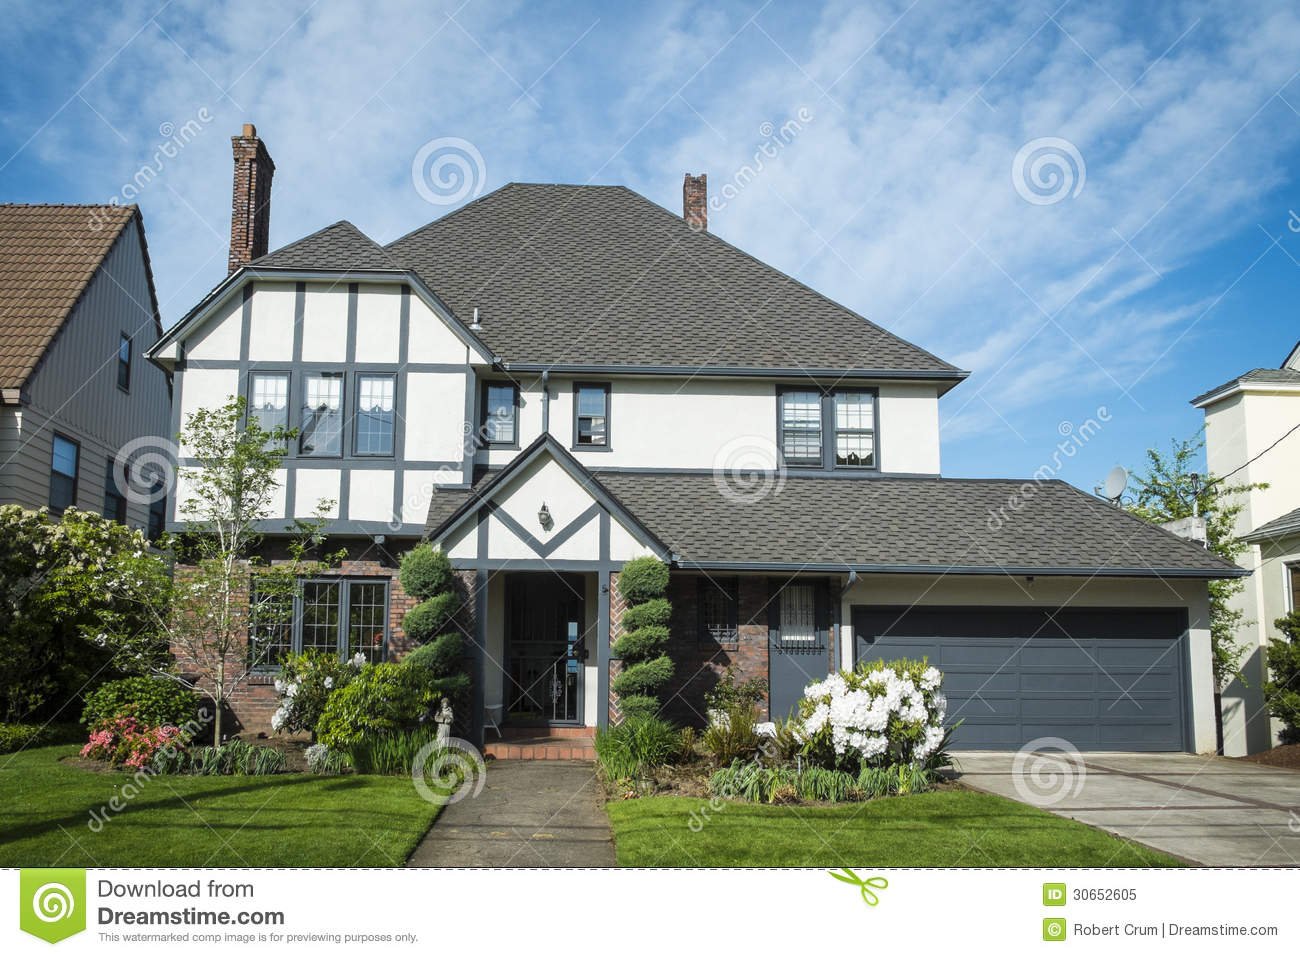 Classic american suburban house royalty free stock photo for Classic american house